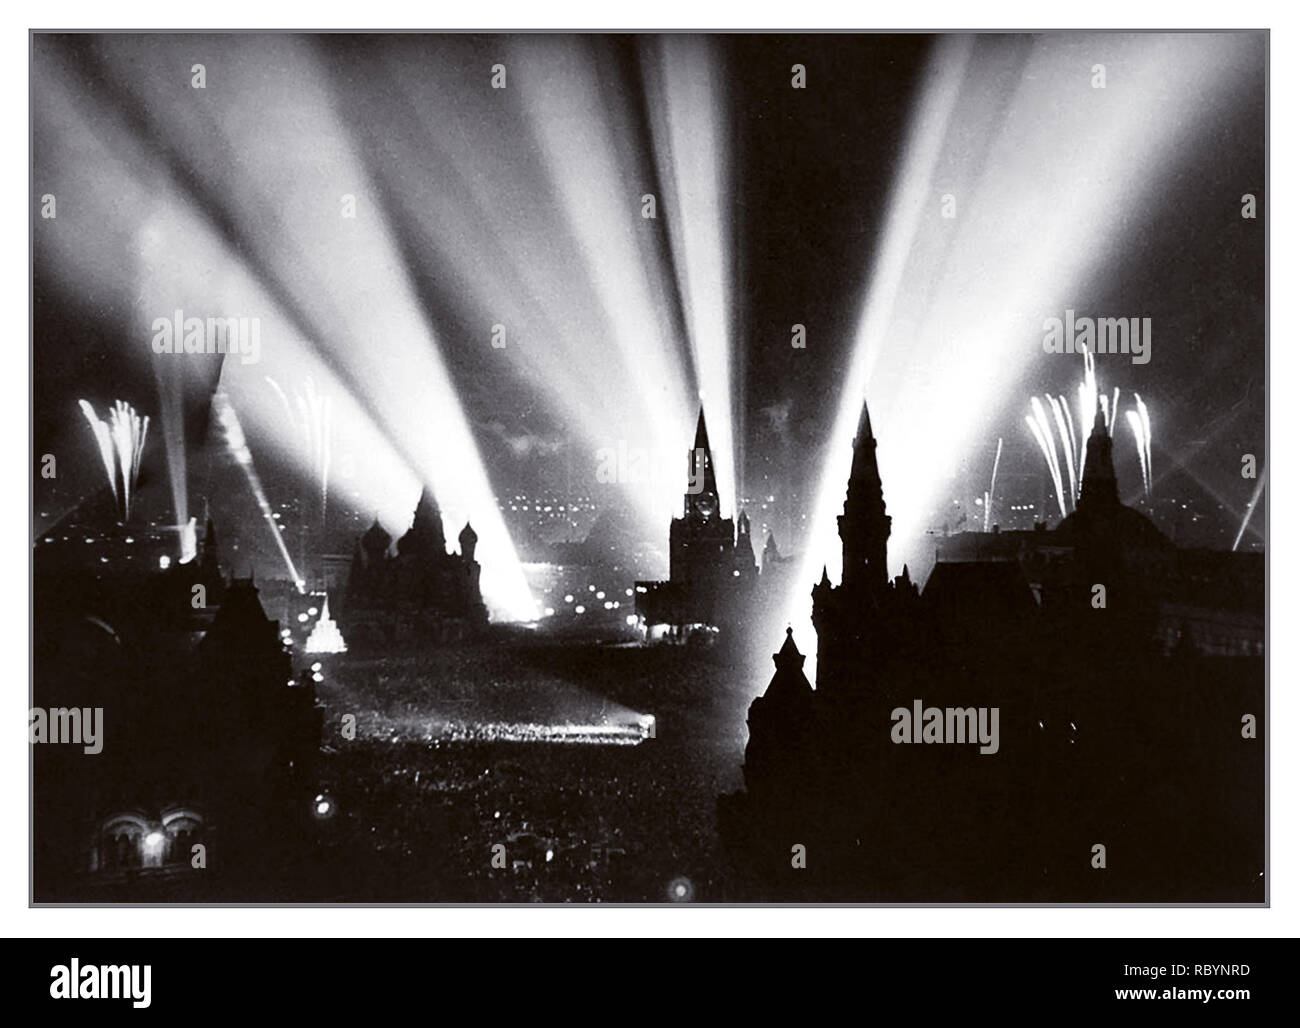 WW2 Hostilities end Nazi Germany defeated Moscow Red Square 1945 searchlights and fireworks in the sky signal the end of WW2 Celebrations in Moscow's Red Square, Soviet Union May 9, 1945 - Stock Image